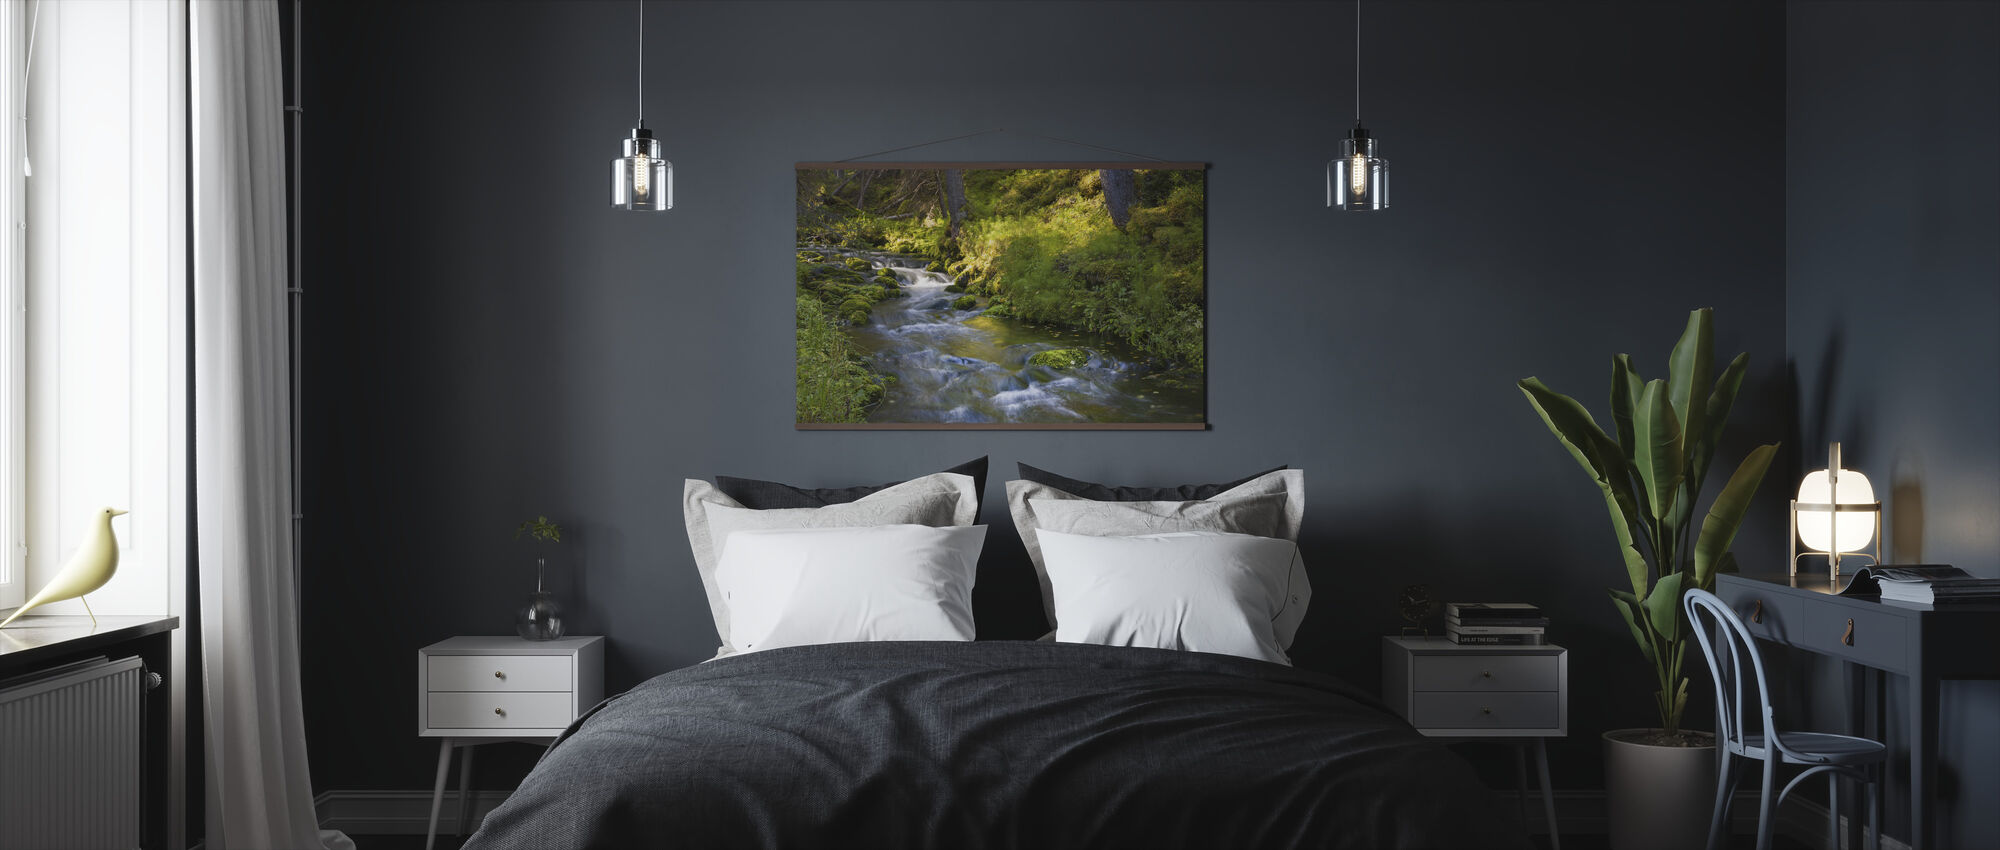 Finnish Forest River - Poster - Bedroom